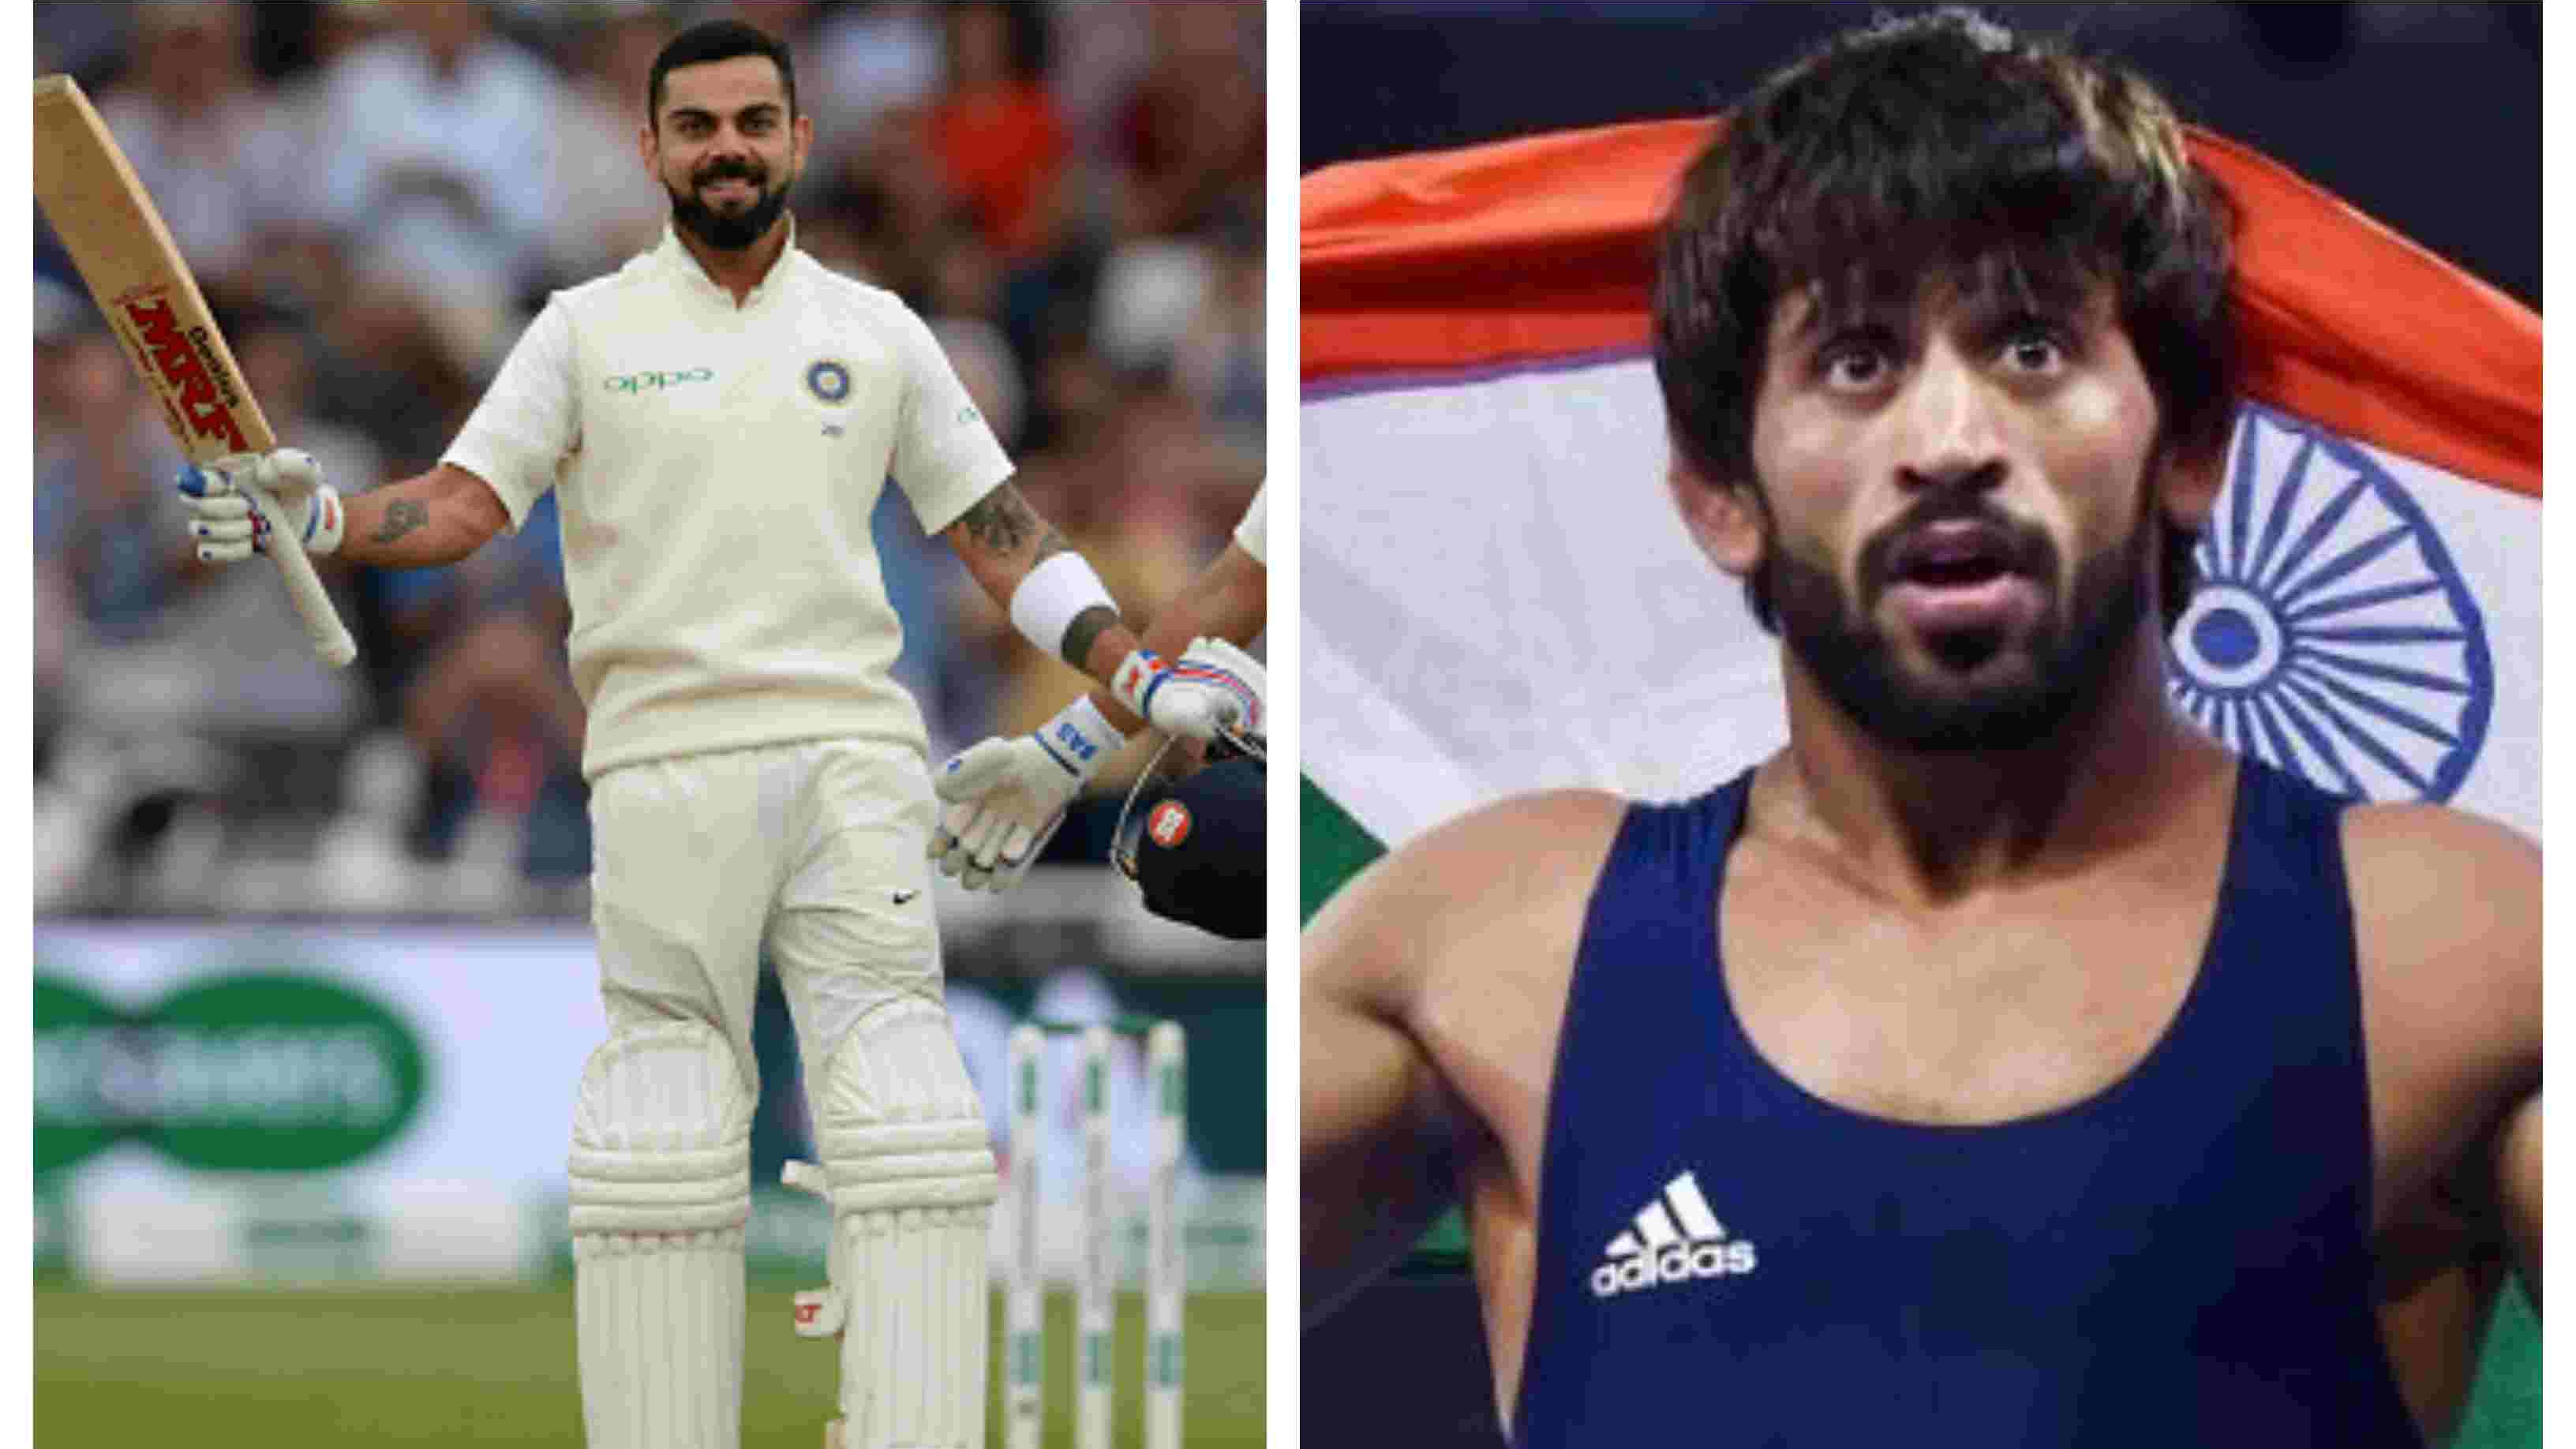 Sports Ministry explains why Virat Kohli was preferred for Khel Ratna over Bajrang Punia